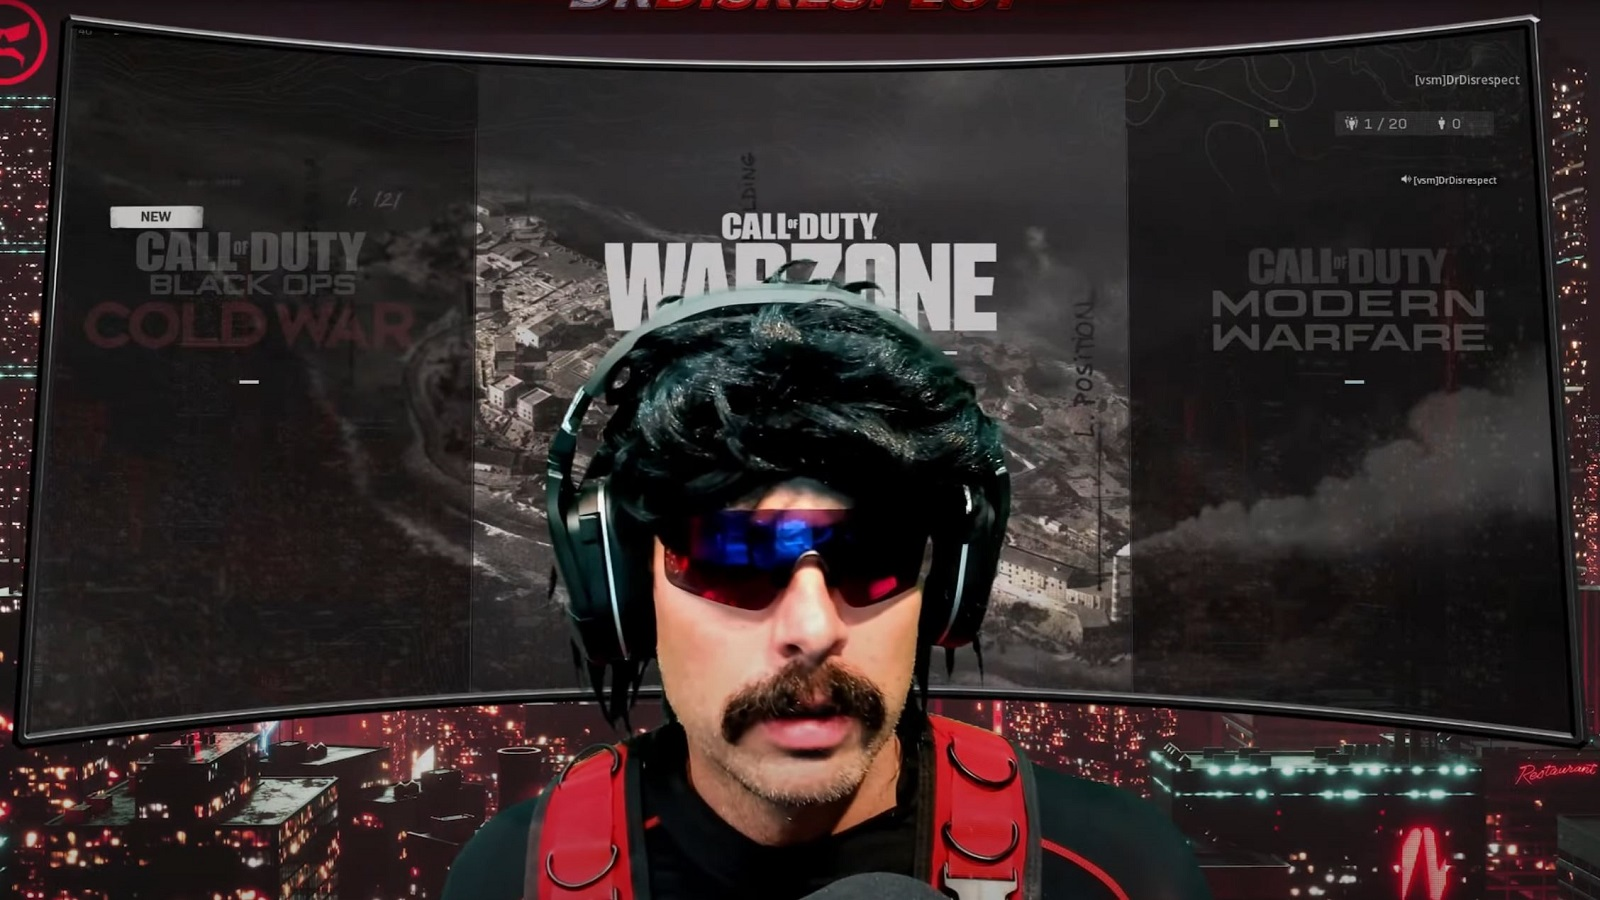 Dr Disrespect YouTube Call of Duty Warzone